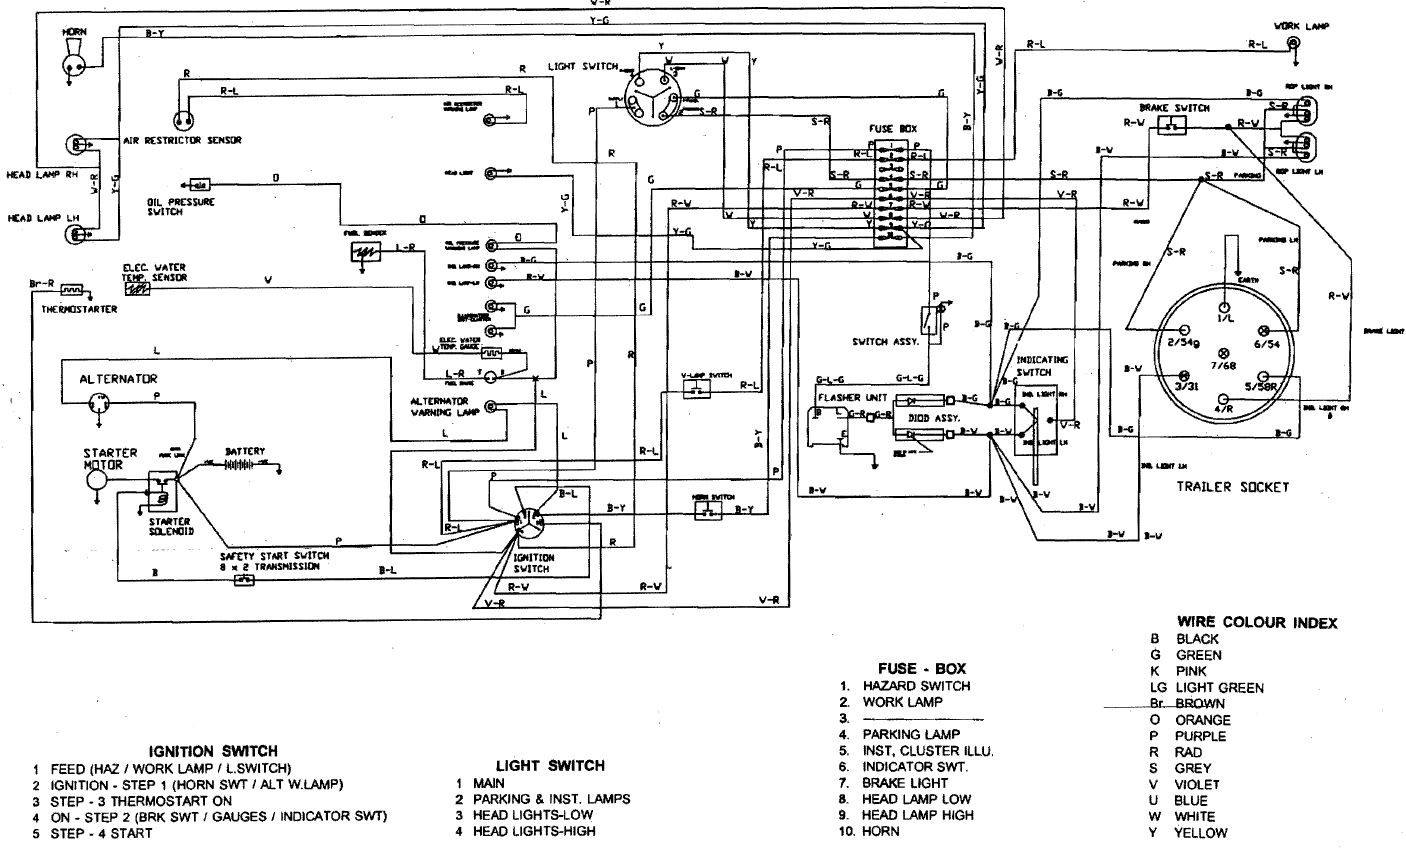 Kubota Mower Ignition Switch Wiring Diagram Free